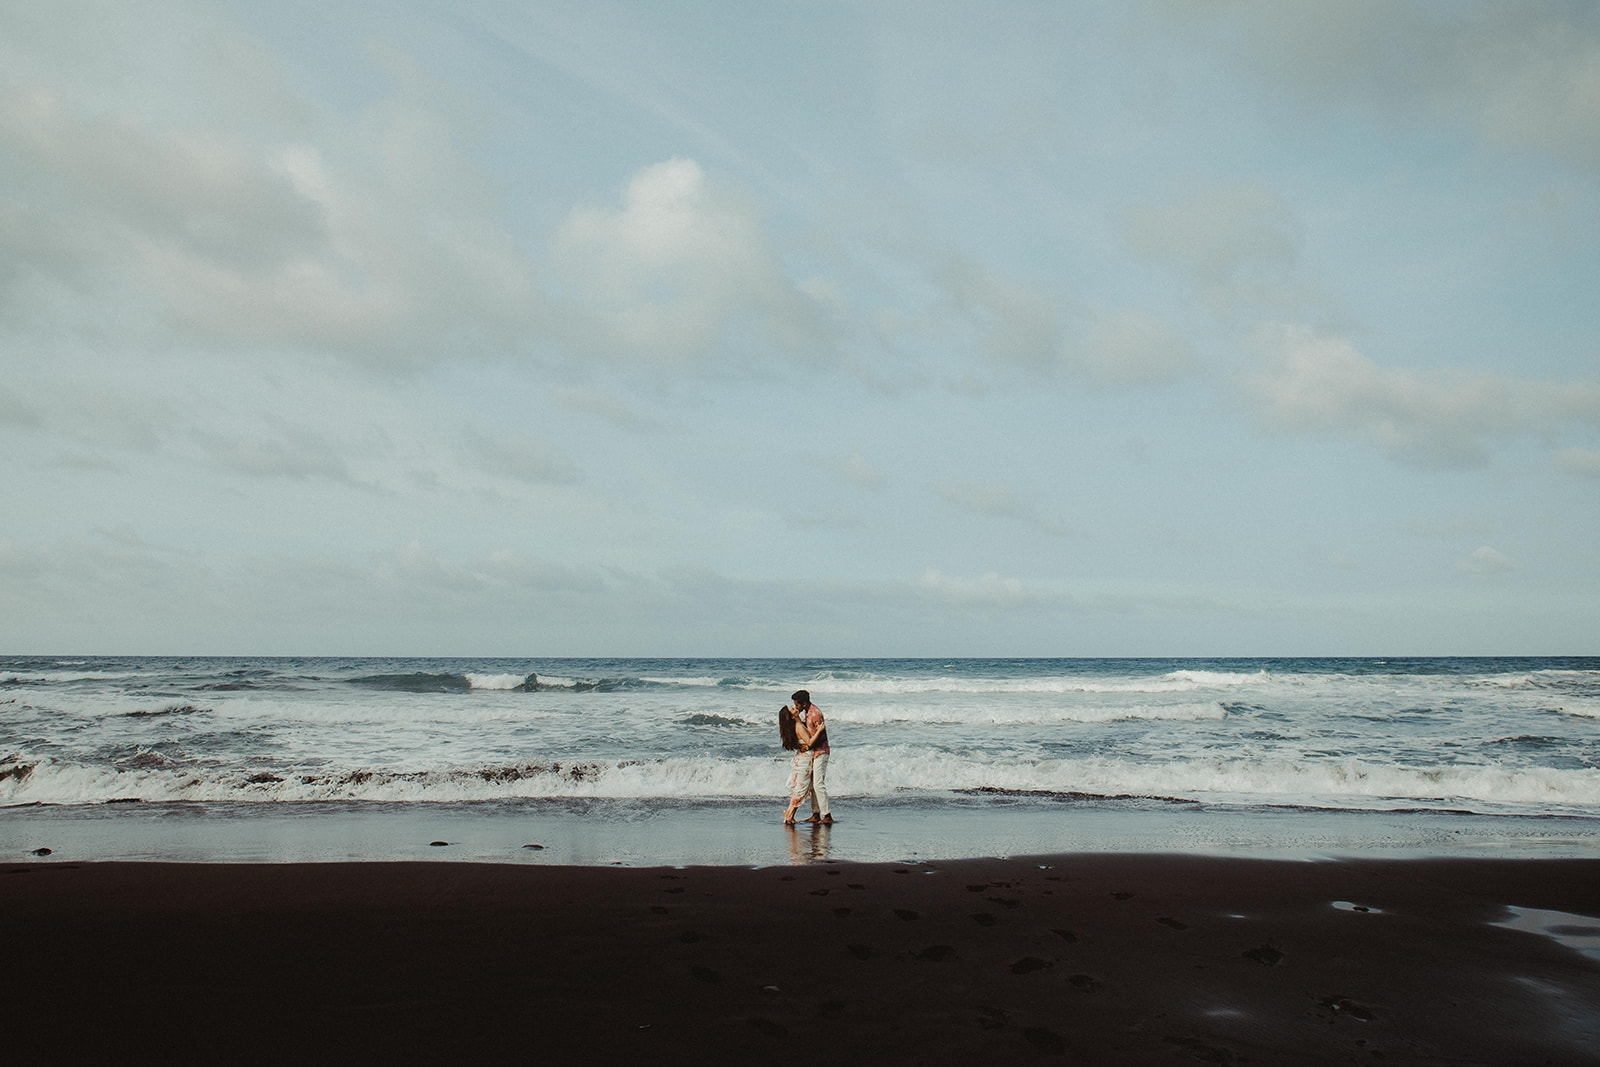 big island epic locations for photo sessions